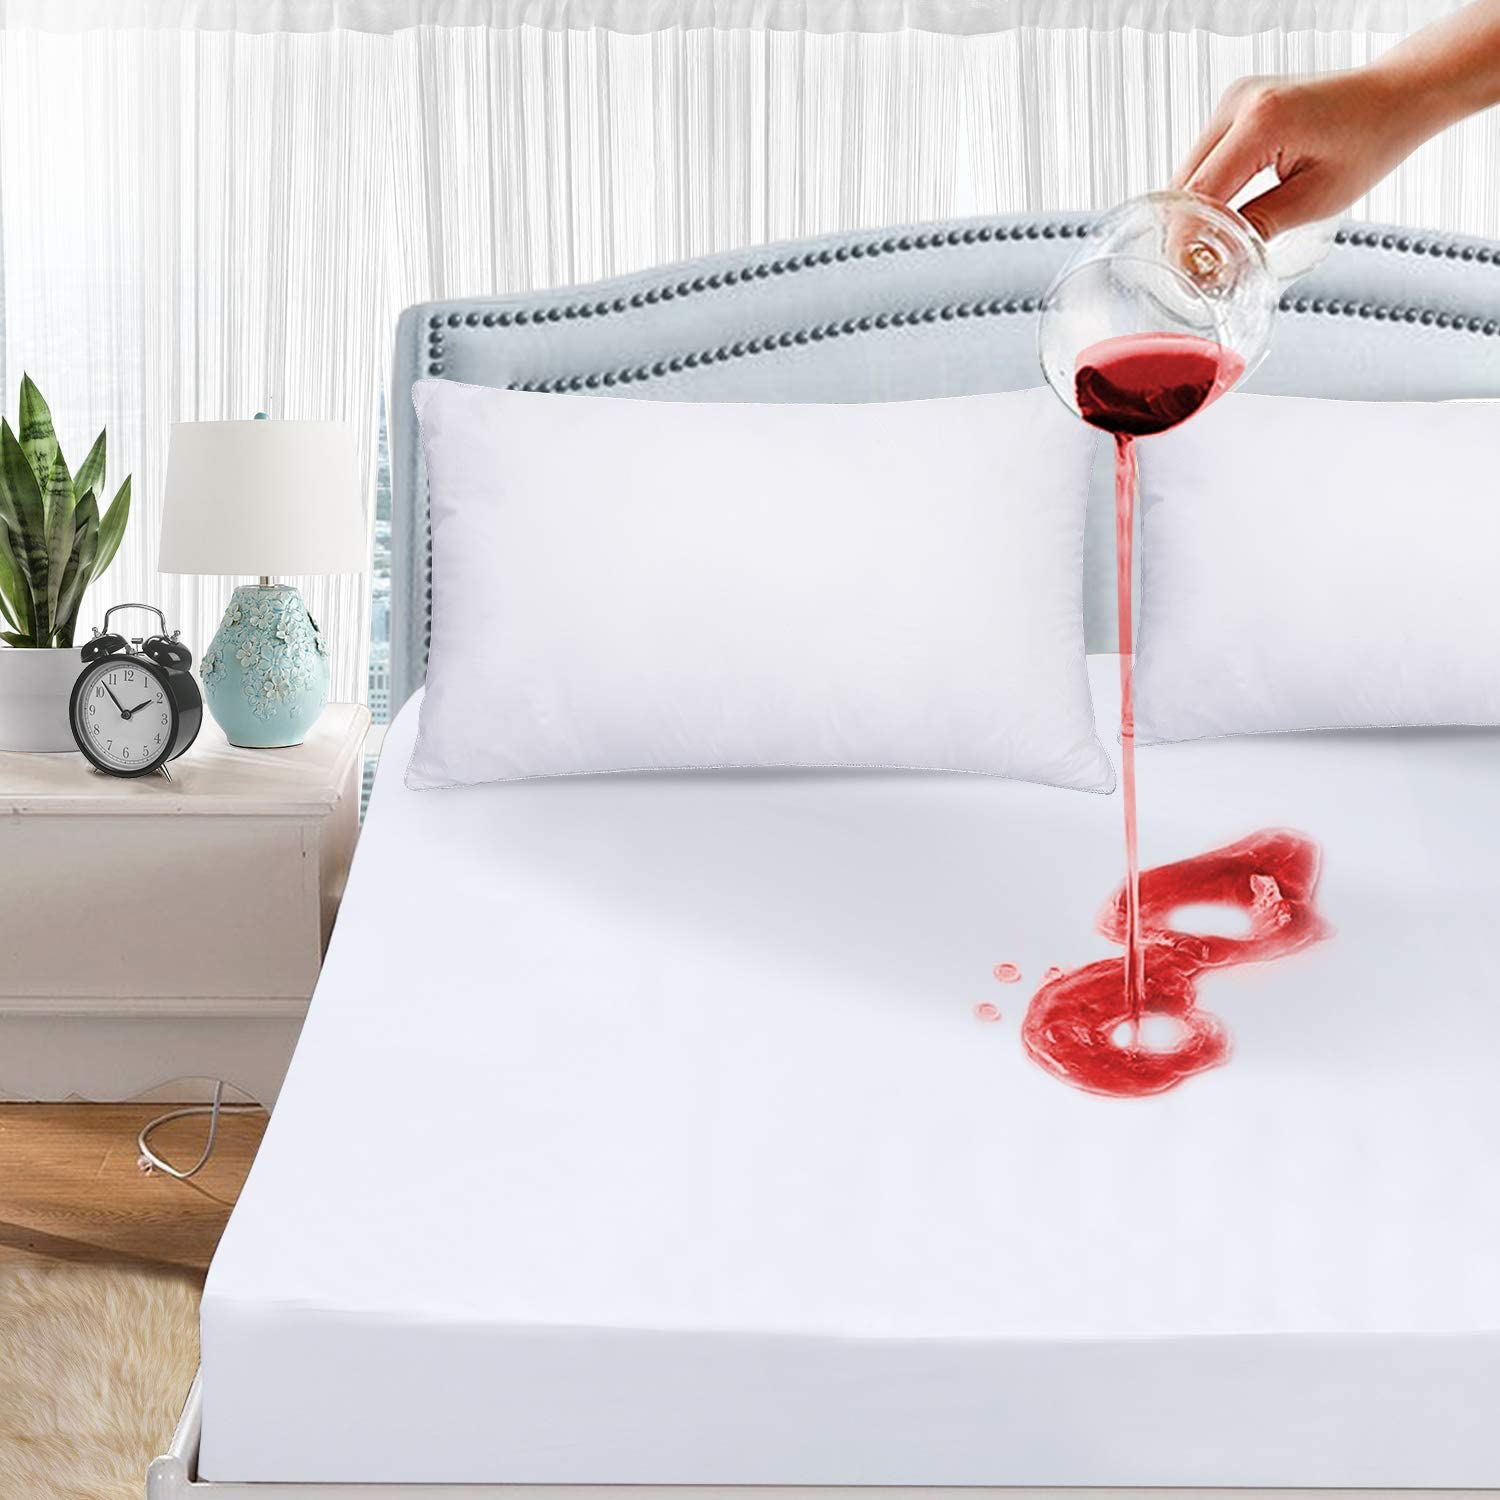 Polyester Water-resistant Mattress Protector Cover Fitted Breathable and Soft